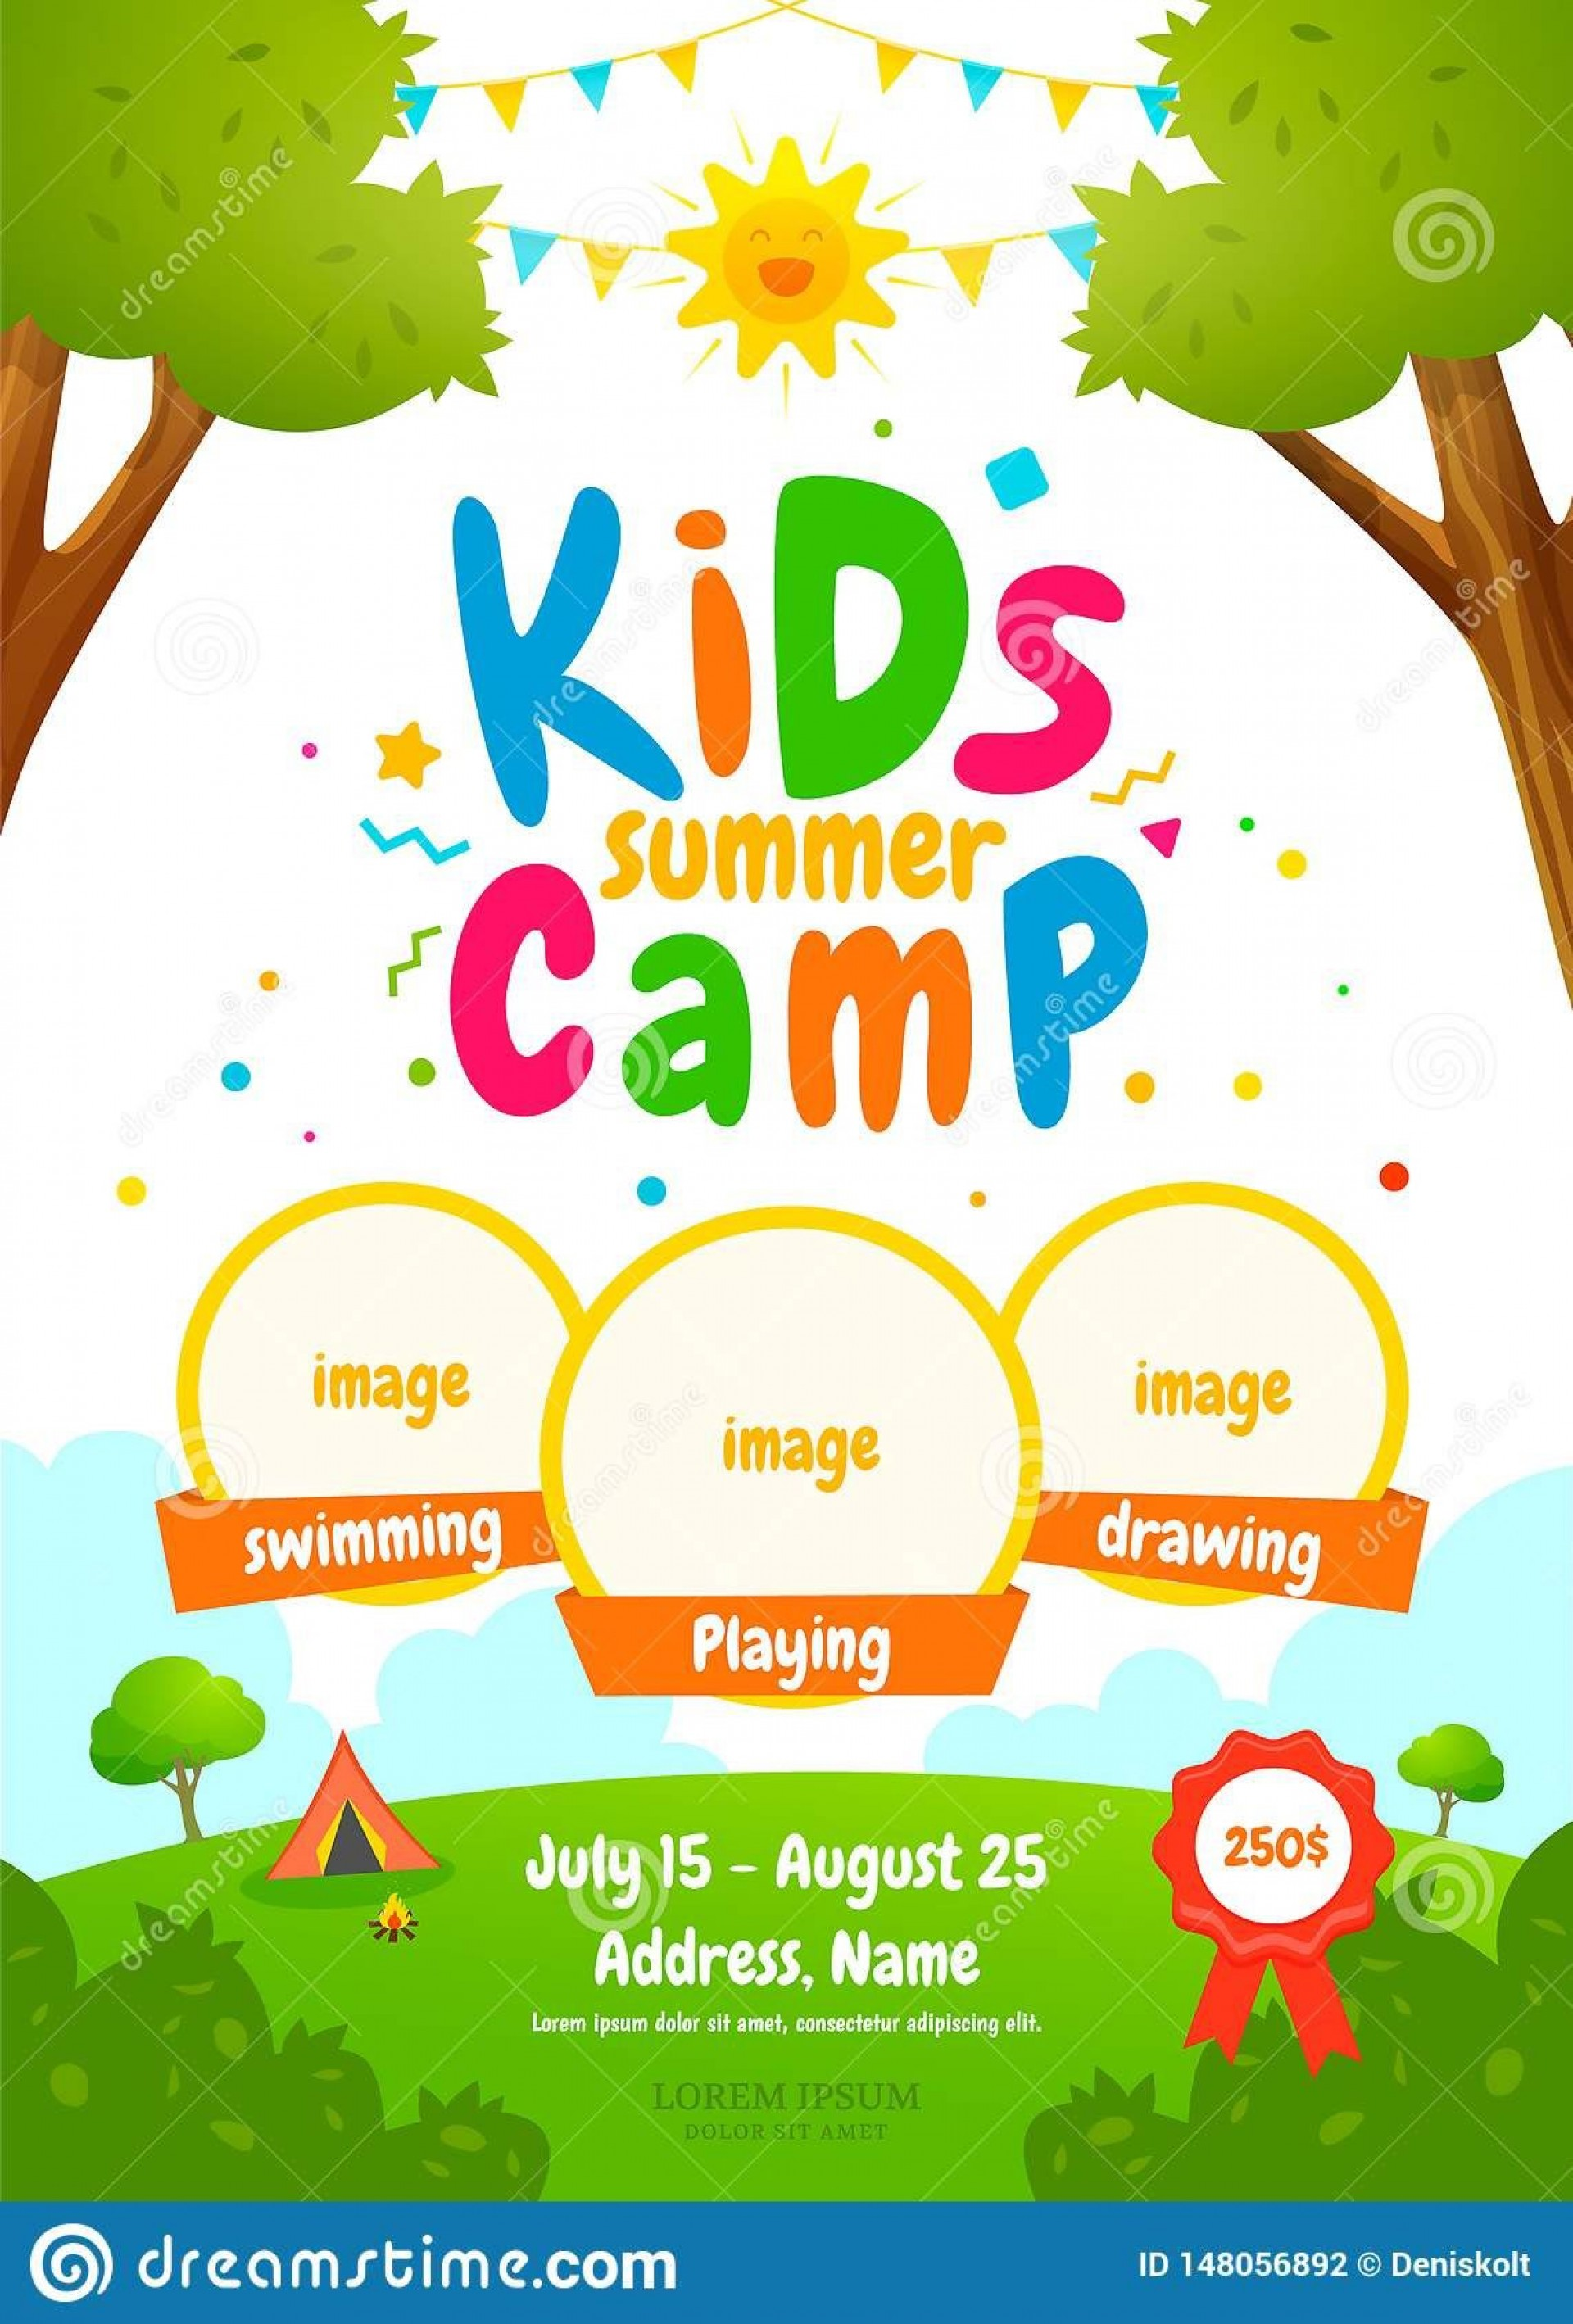 006 Outstanding Summer Camp Flyer Template Concept  Day Microsoft Word Background1920